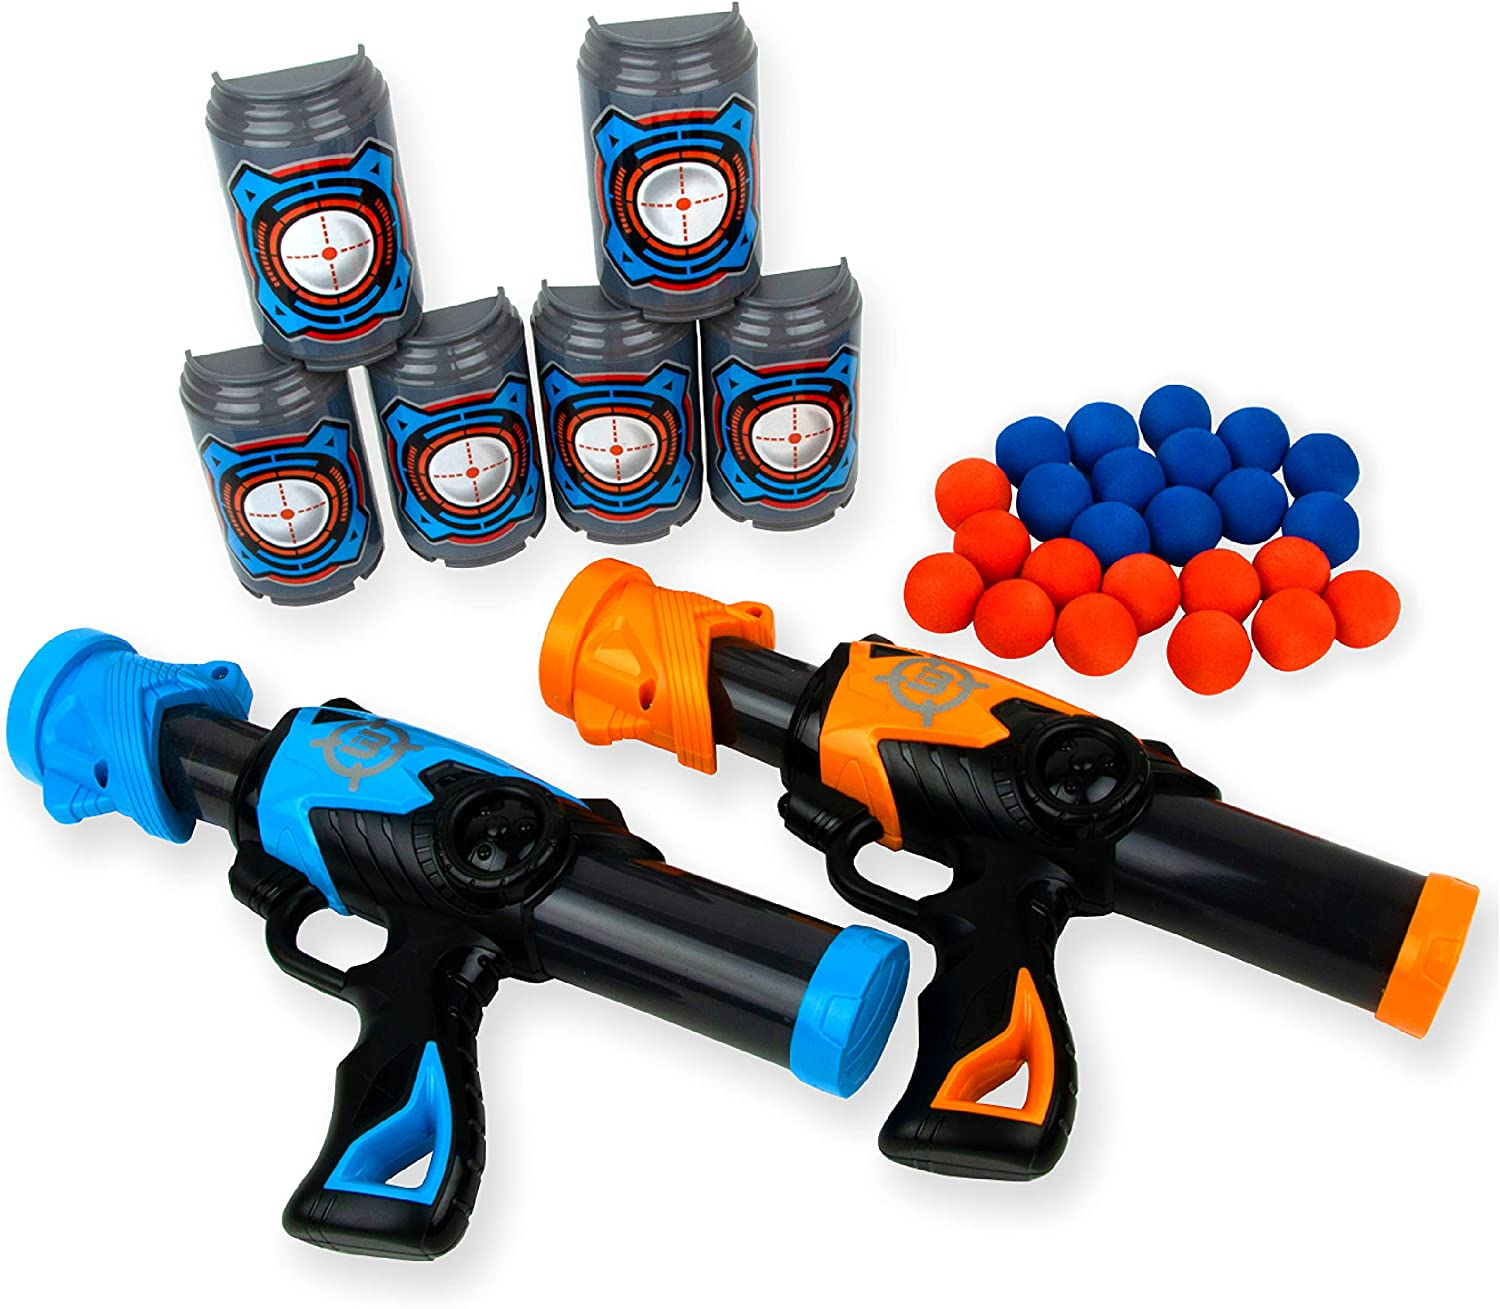 Boley Blast Poppers - 32 Piece Set with 24 Foam Balls, 6 Target Stands, and 2 Toy Guns for Boys and Girls - Plastic Fake Gun Playset for Kids Ages 3 and Up